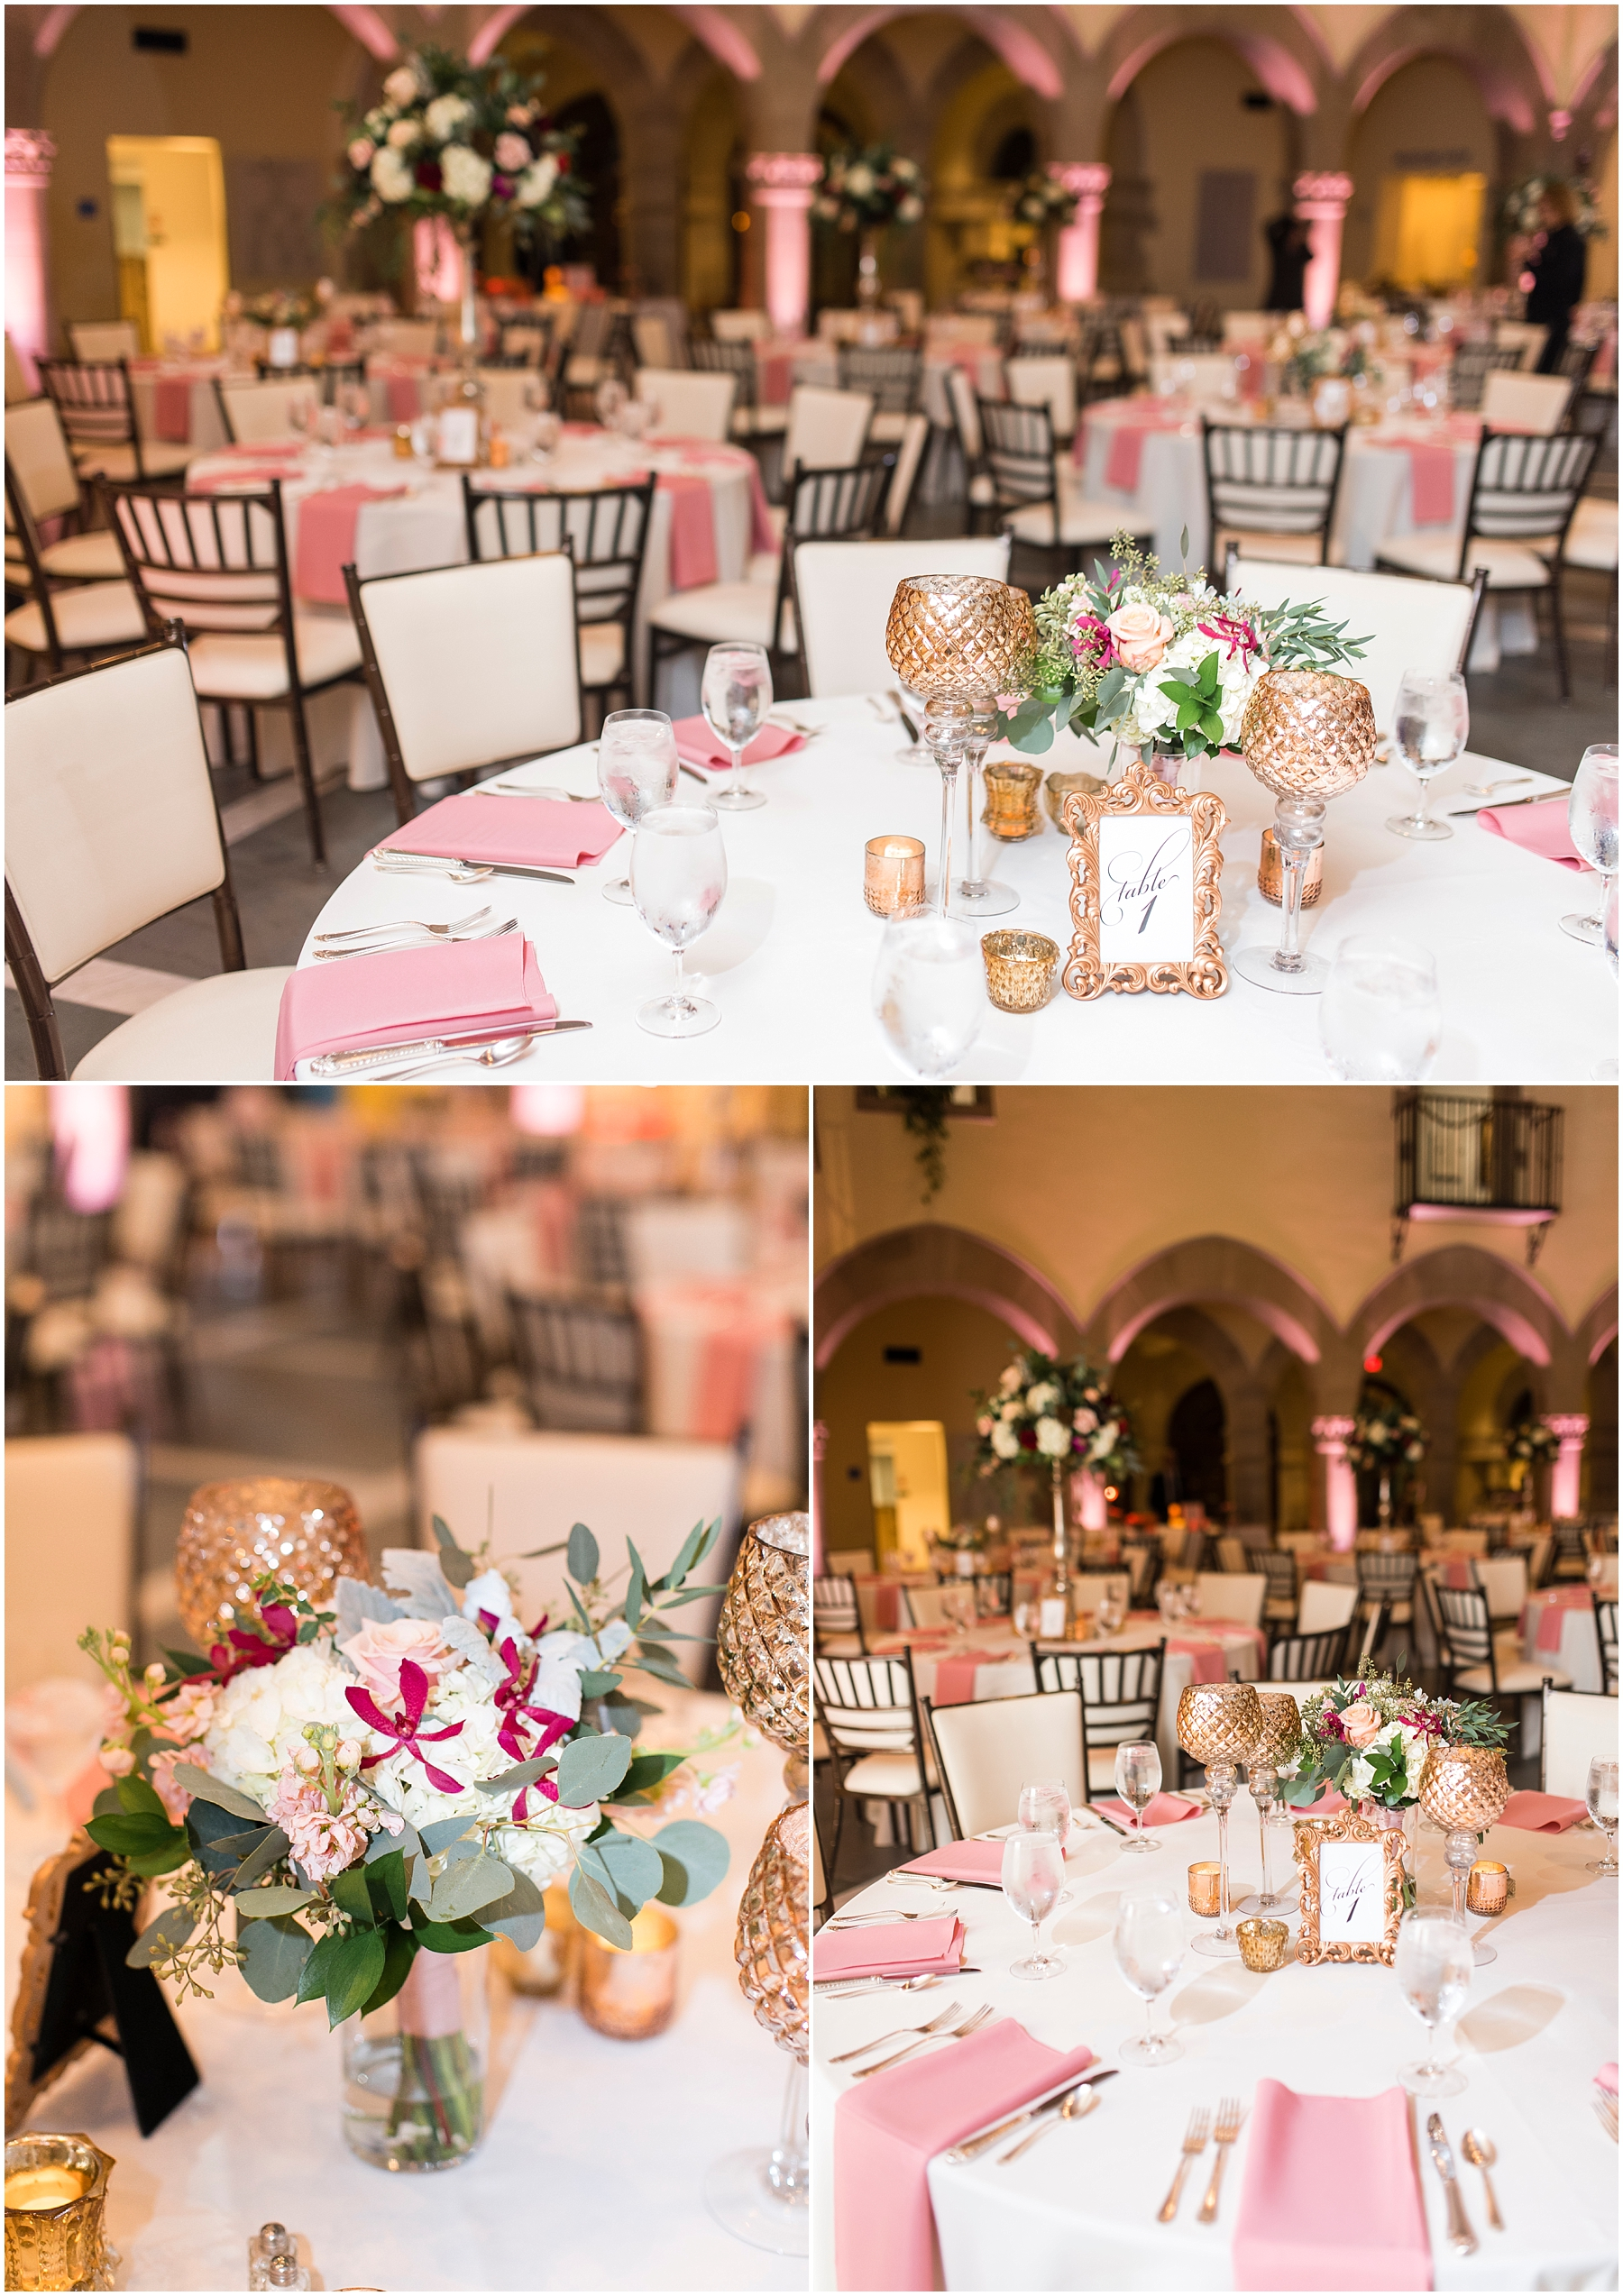 wedding reception at chrysler museum wedding, norfolk, virginia, fall wedding, baxter creative events, palette of petals